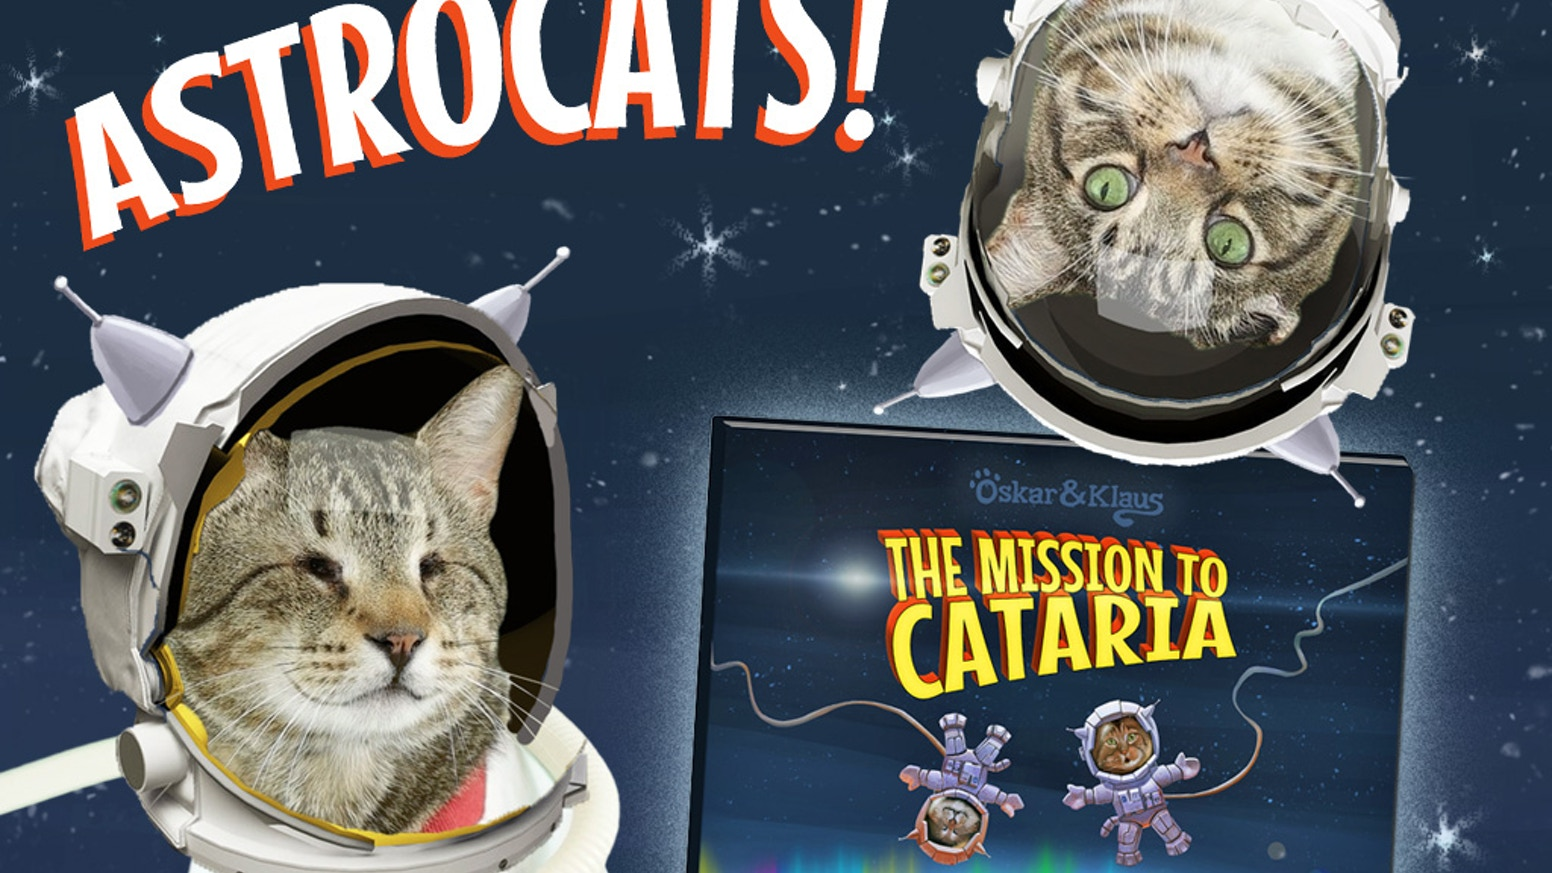 ASTROCATS! Oskar & Klaus are boldly going where no cat has gone before! Help launch their book through the stratosphere!